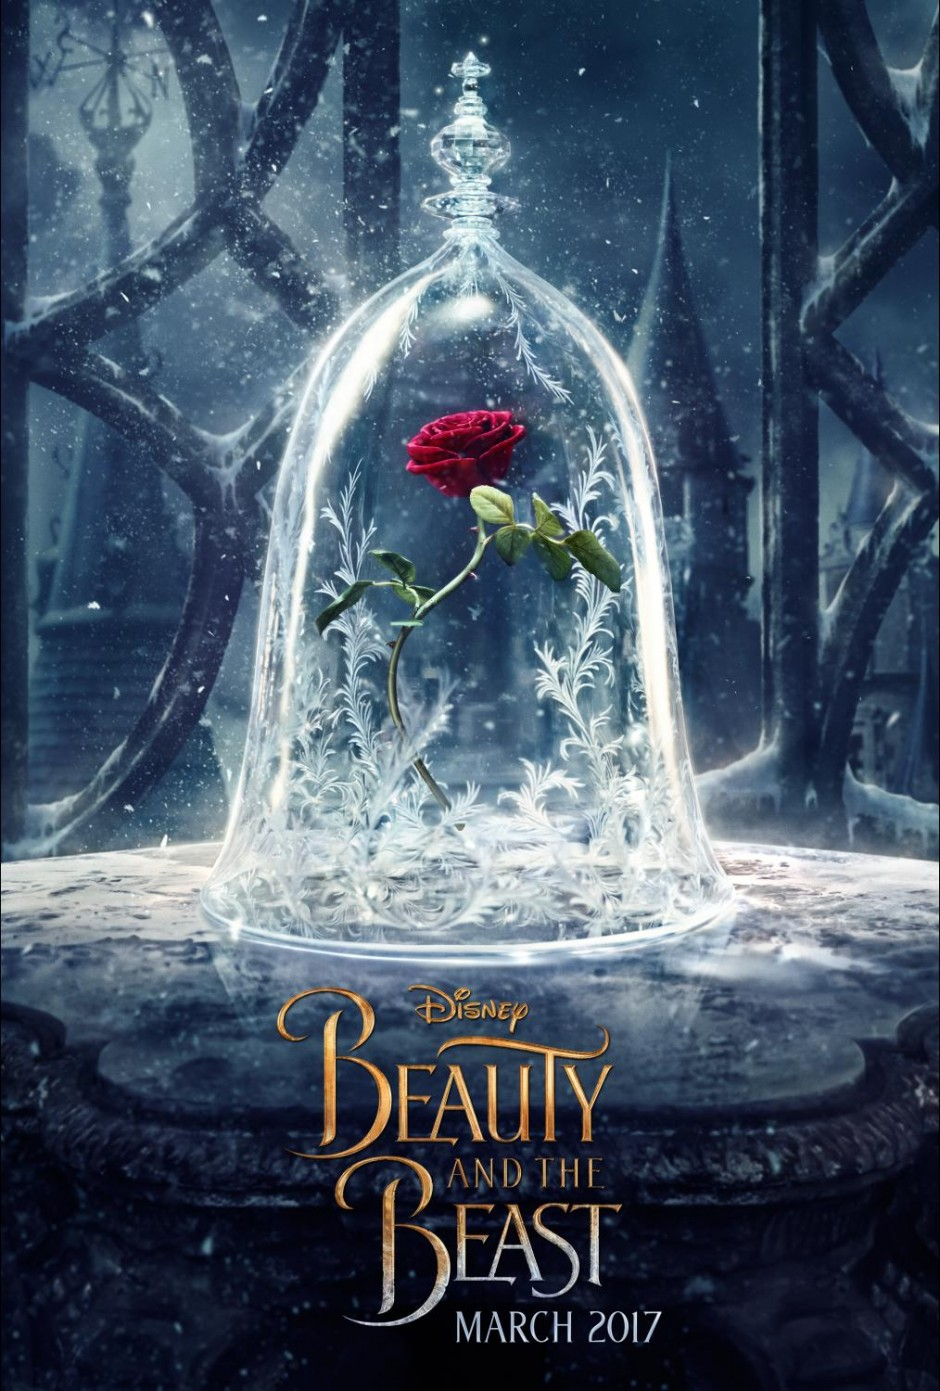 First Look at the Live Action Beauty and the Beast Disney Movie Poster